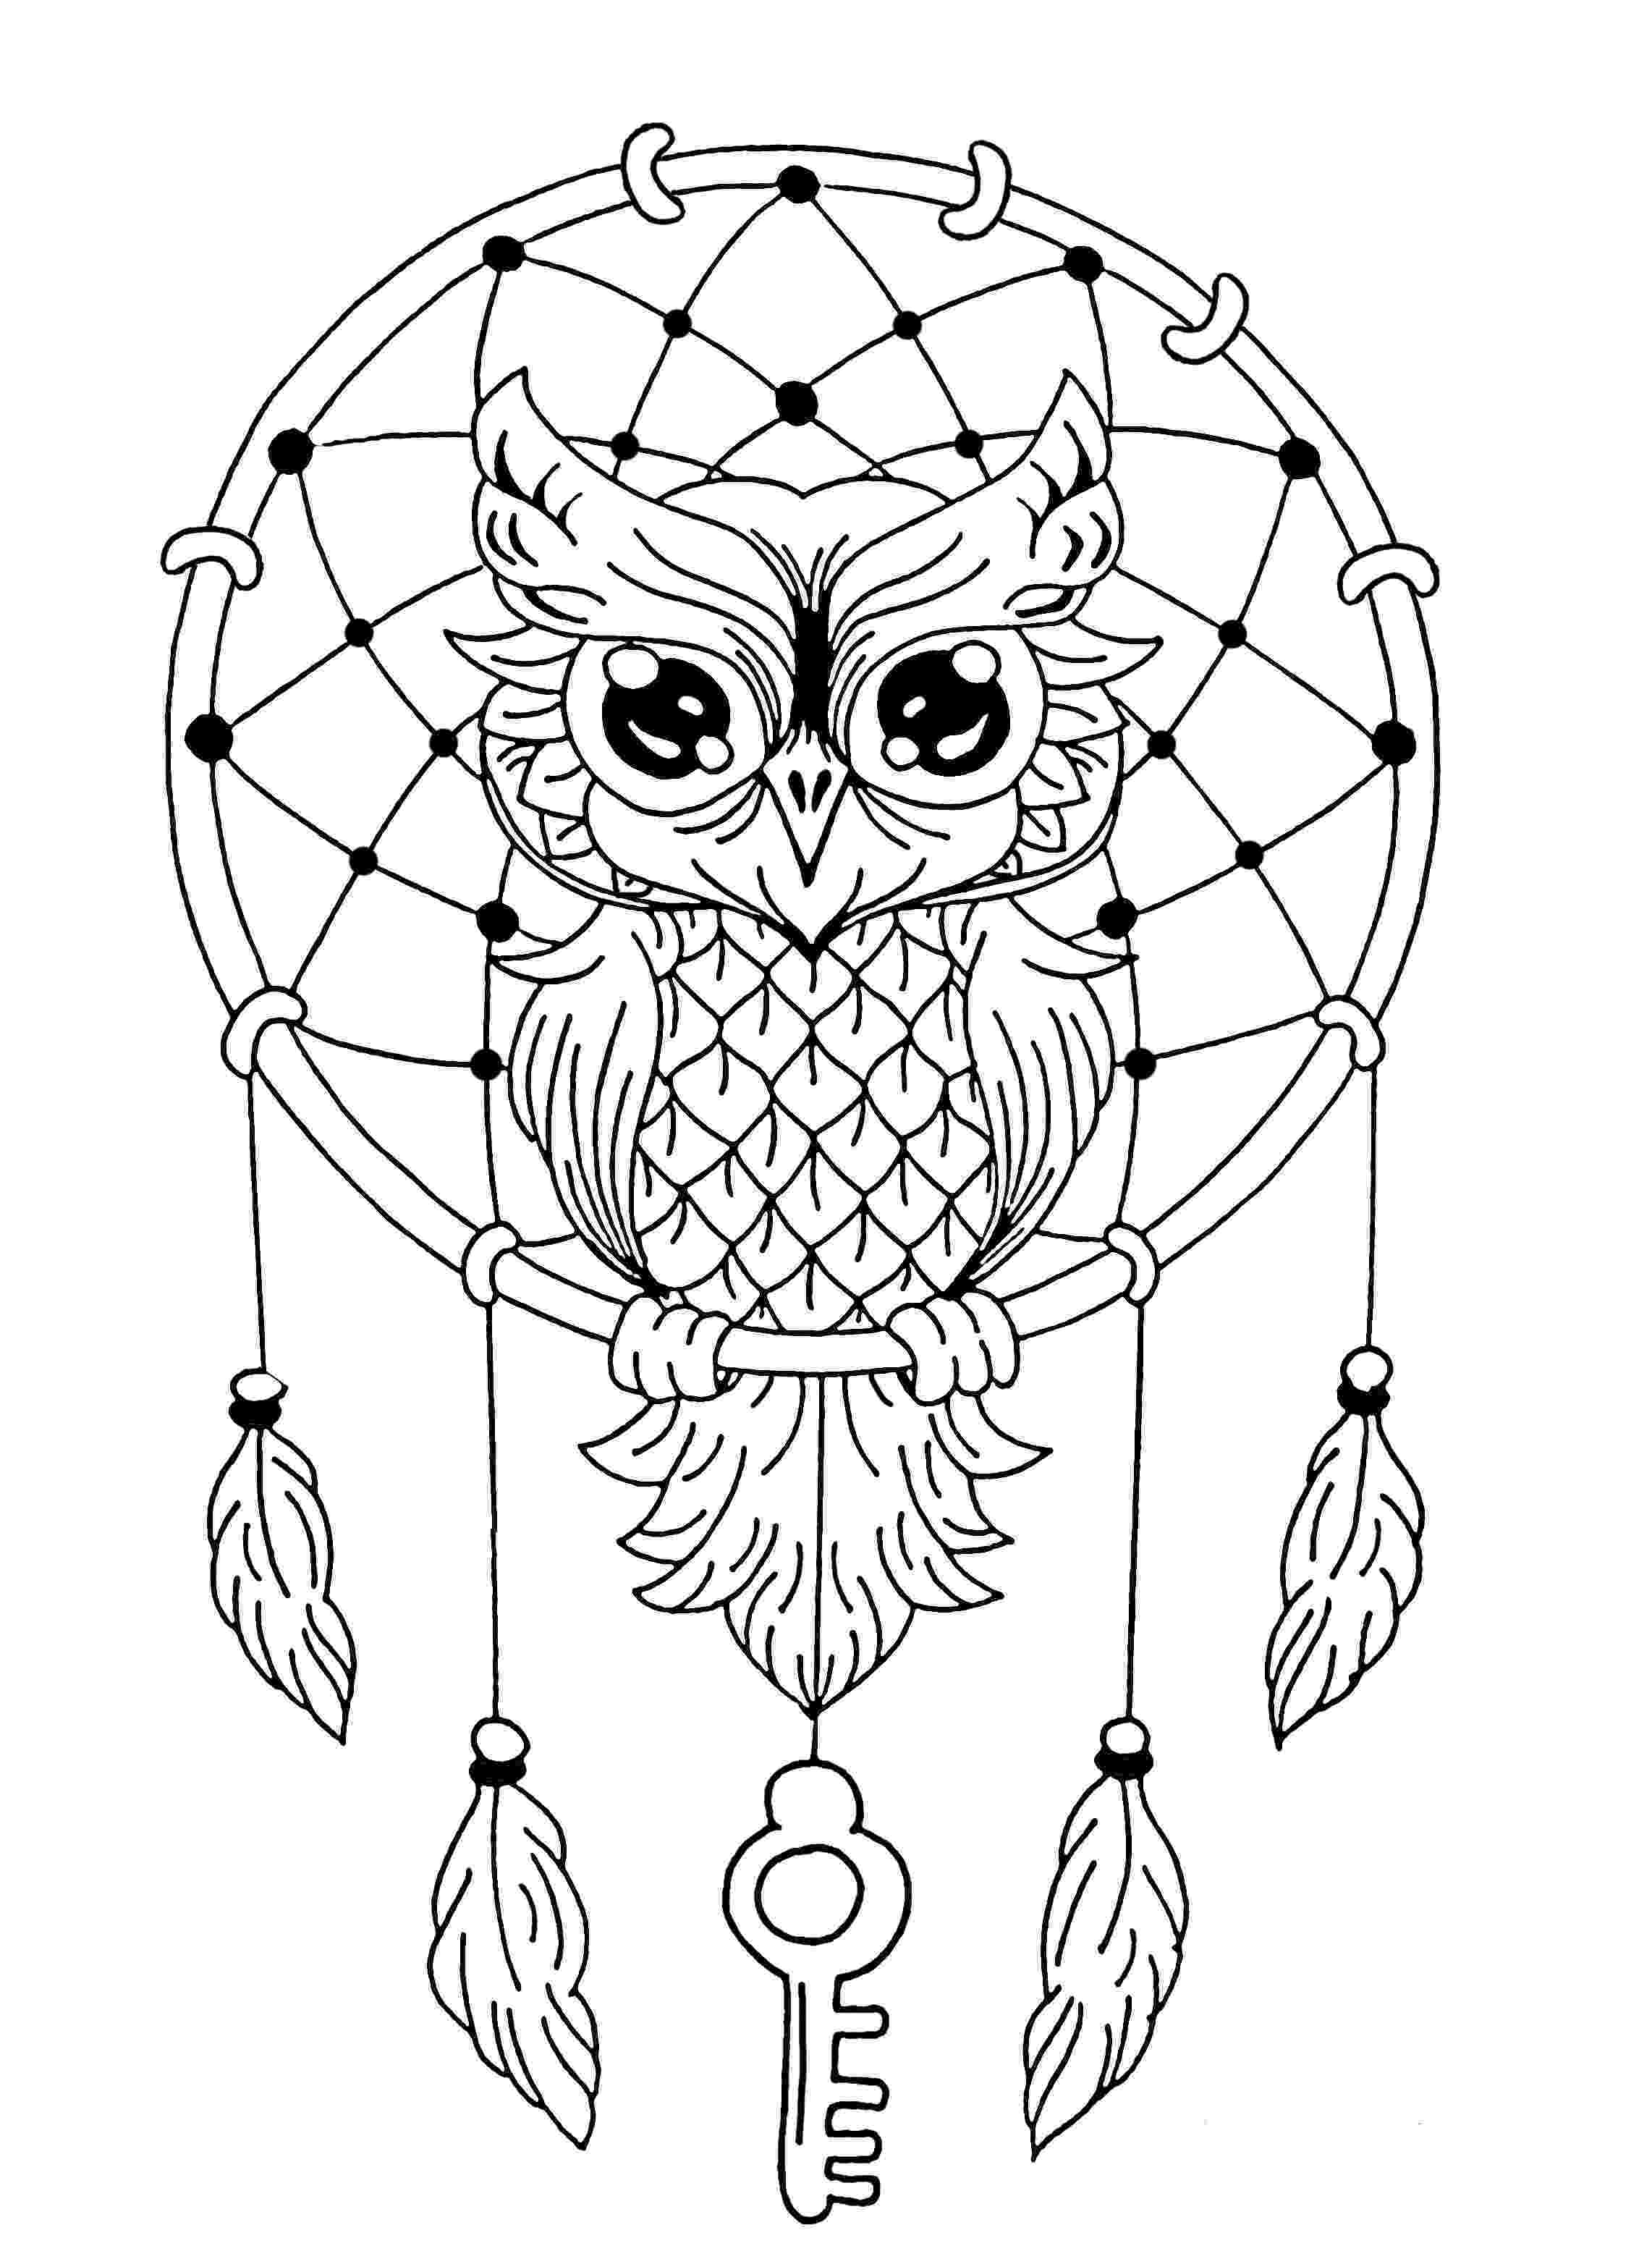 cute coloring pages of owls cute owl coloring pages large feathers pinterest of coloring pages owls cute